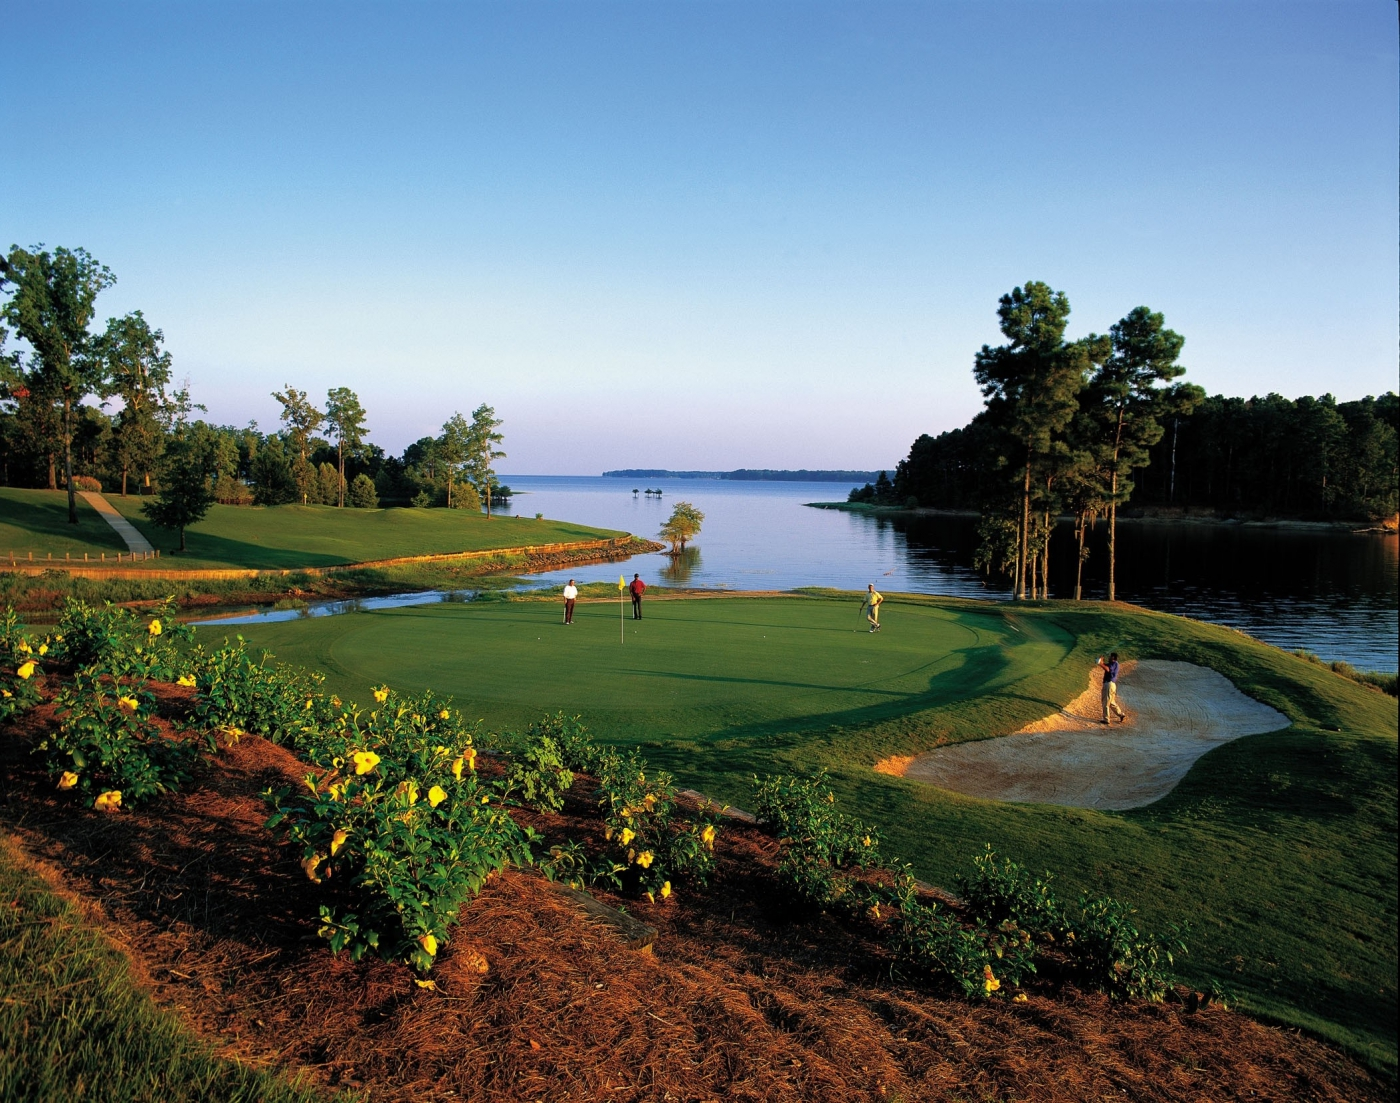 Play one of hundreds of beautiful golf courses.